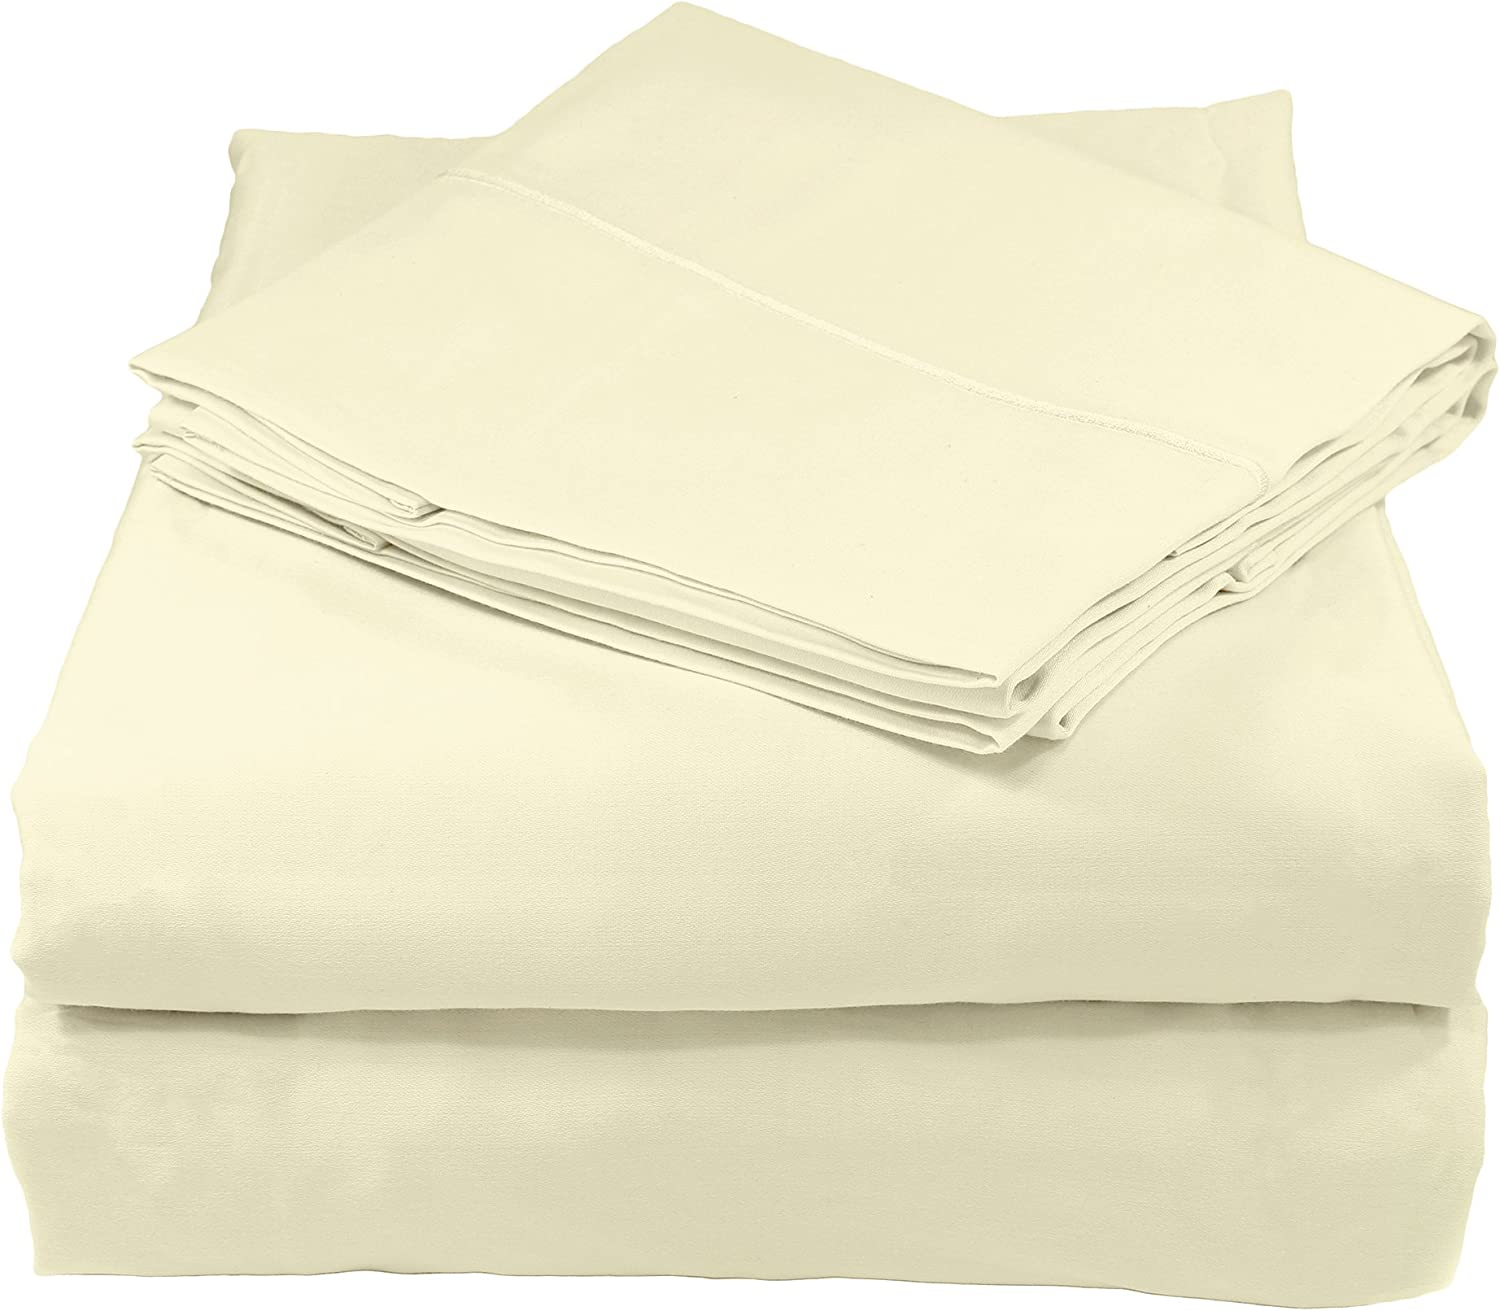 Whisper Organics Organic Cotton Sheets Set GOTS Certified, 400 Thread Count, Sateen (California King, Natural)